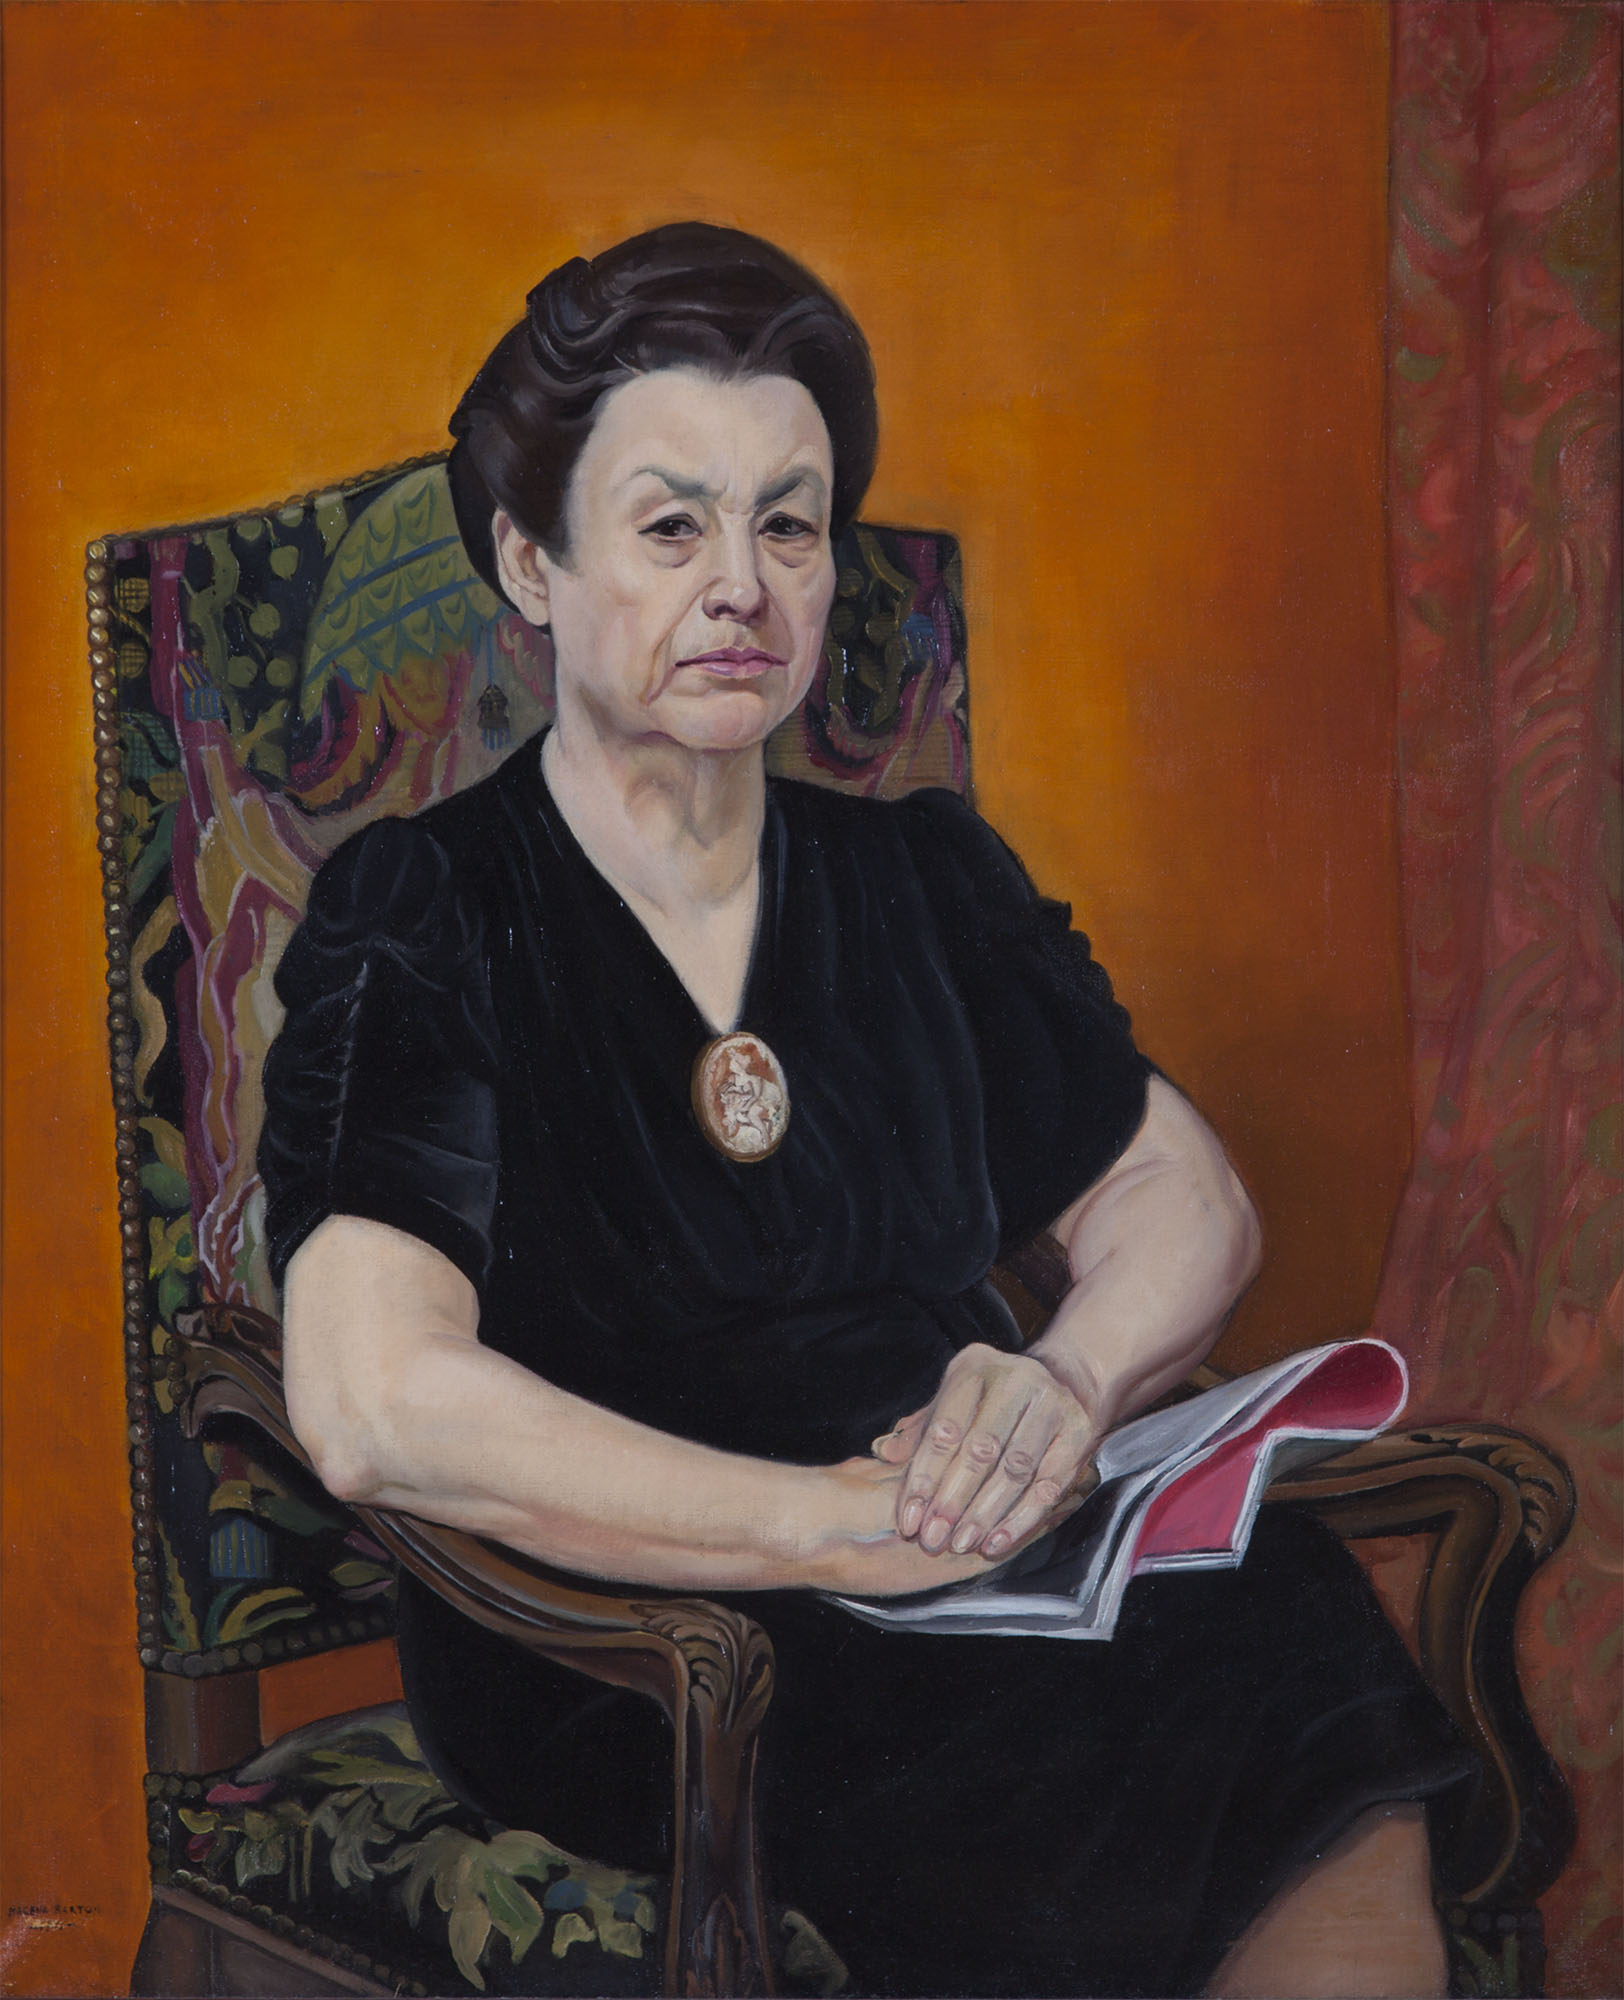 Macena Alberta Barton, Untitled [artist's mother], ca. 1930. Oil on canvas. Collection of DePaul Art Museum, gift of Mr. and Mrs. Harlan J. Berk, 2007.1